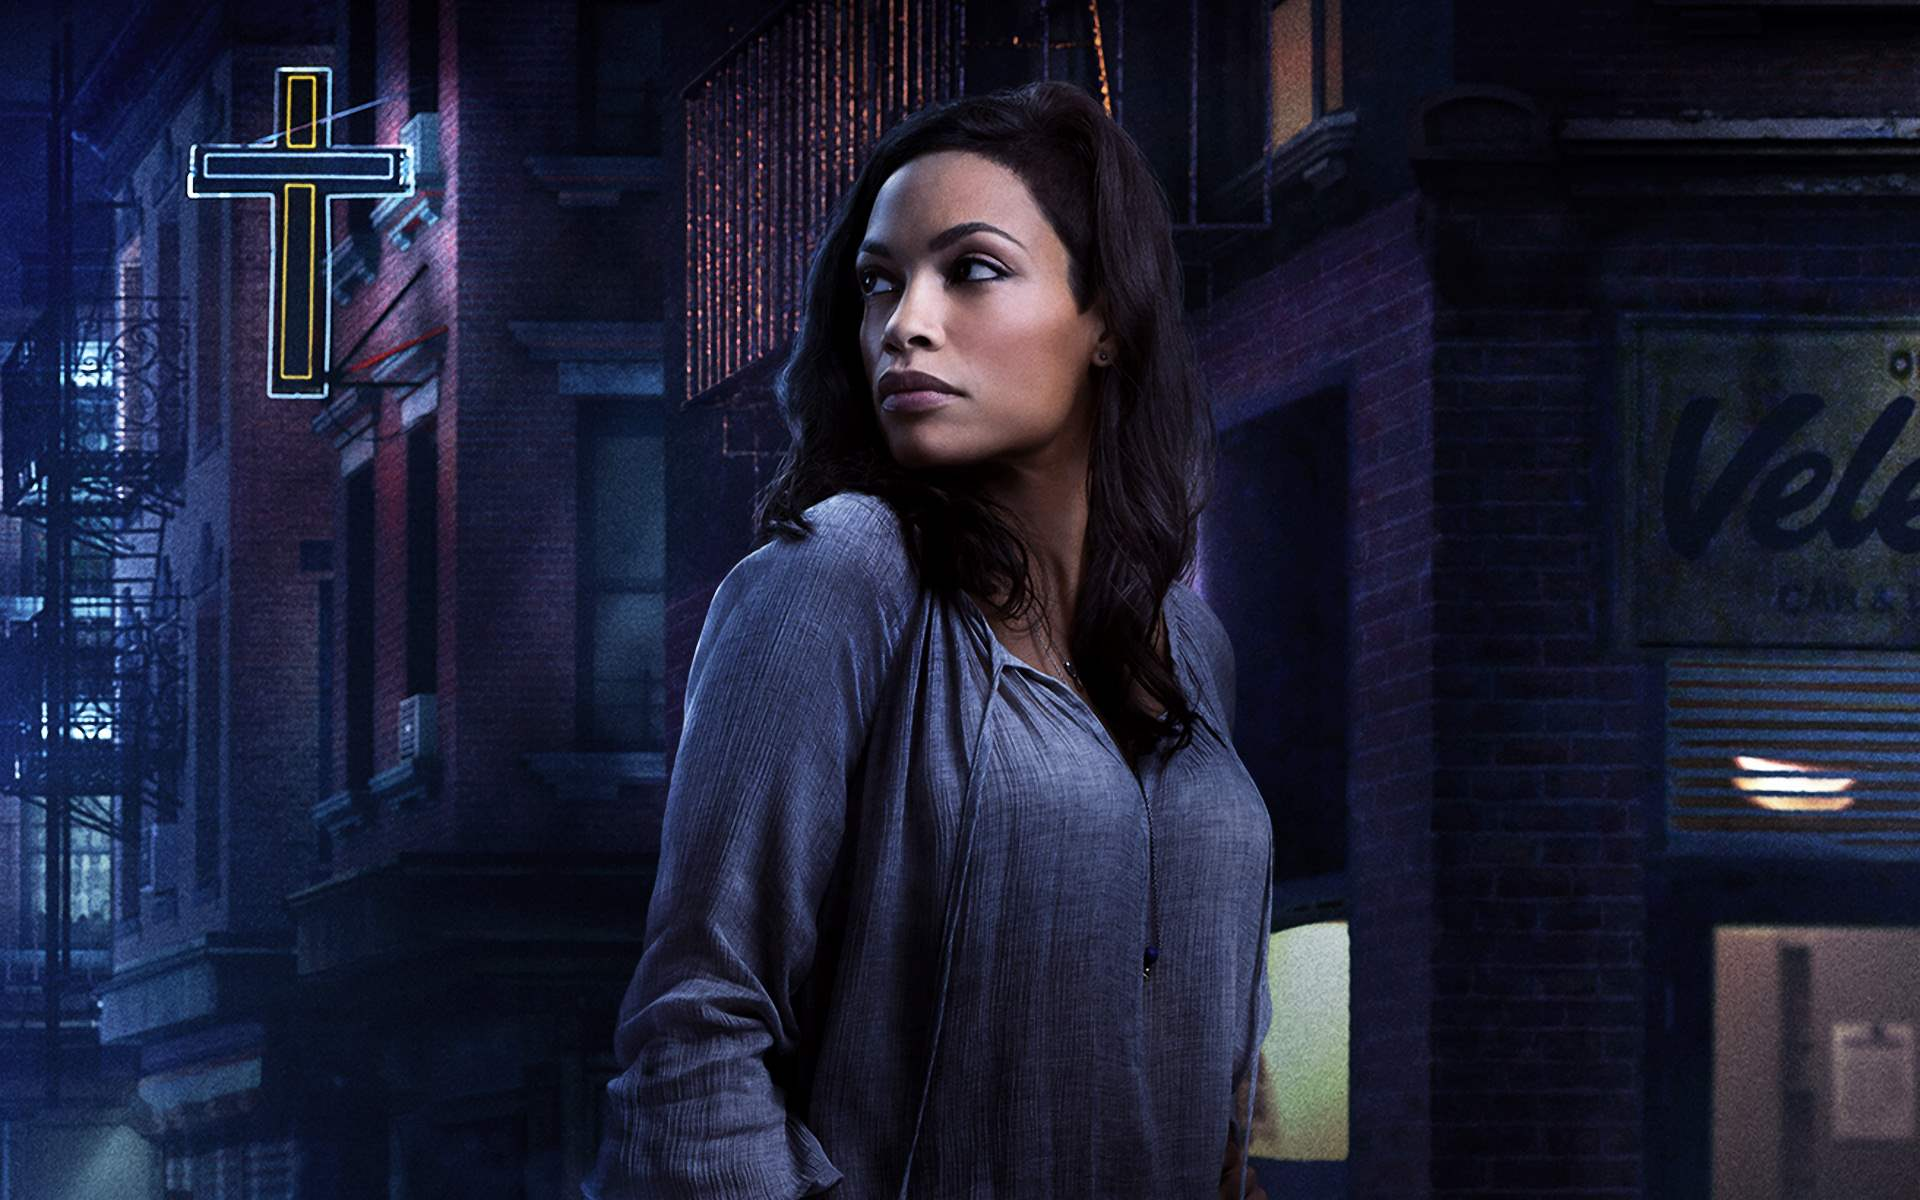 Rosario-Dawson-as-Claire-Temple